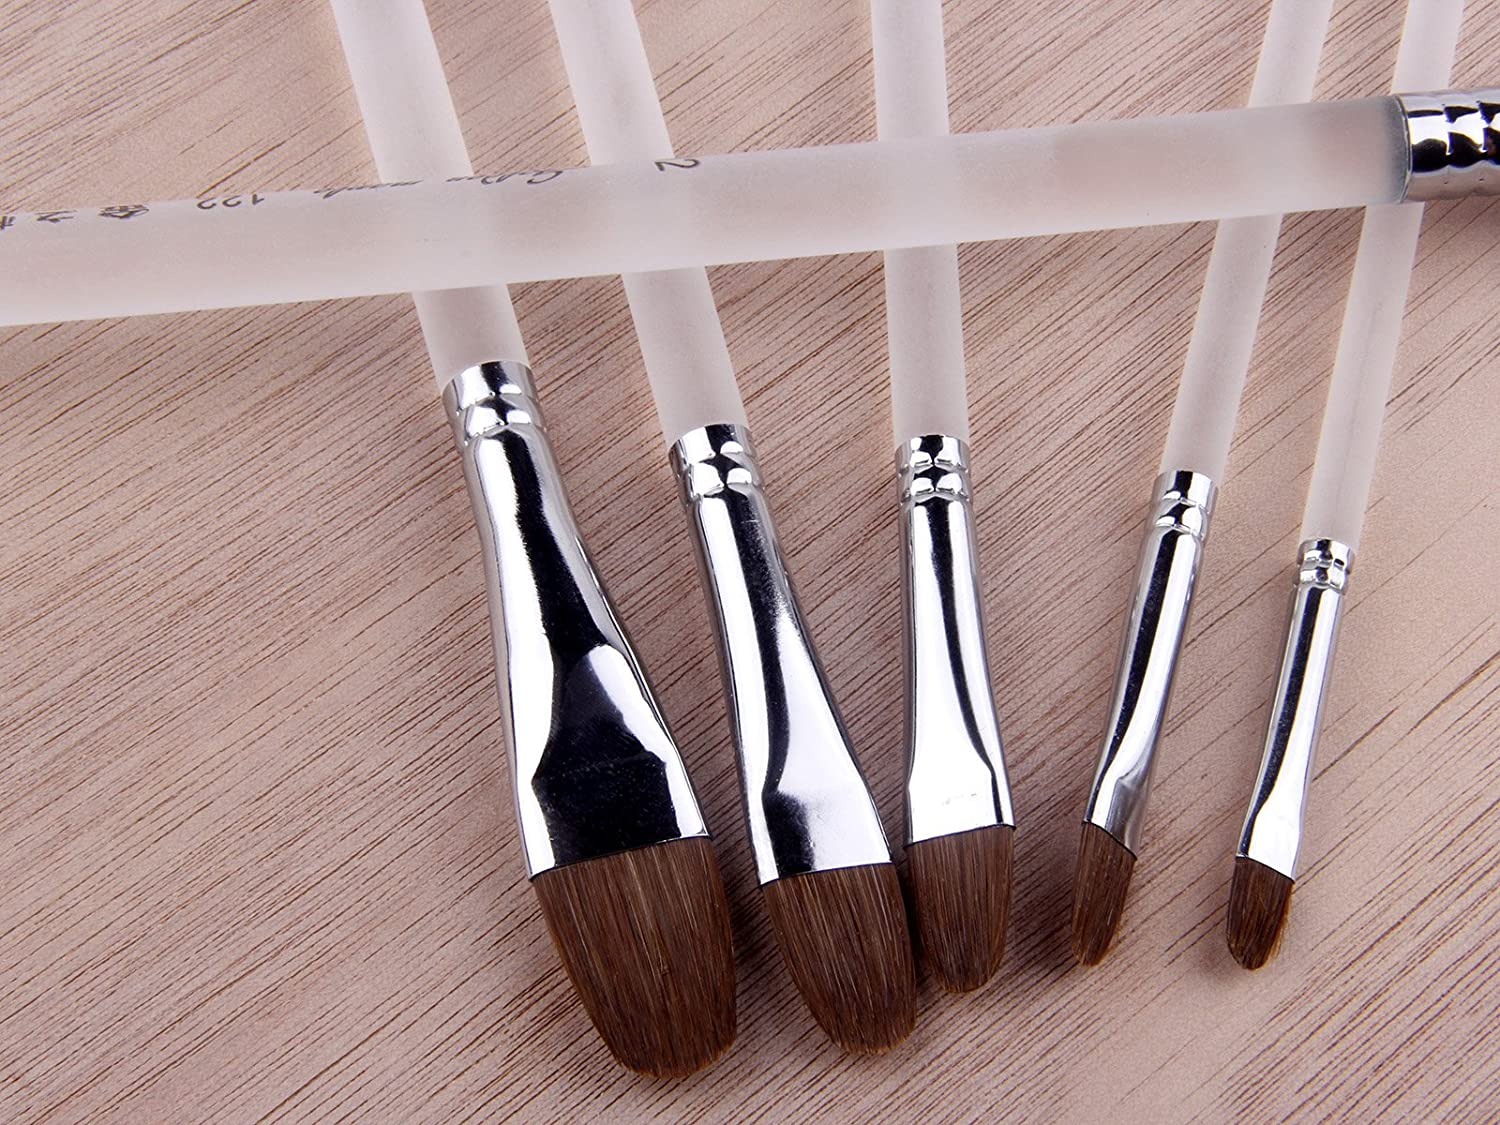 Red Sable Weasel Hair Artist Paint Brushes for Watercolor Painting Filbert Brush Clear Plastic Handle 6Pcs